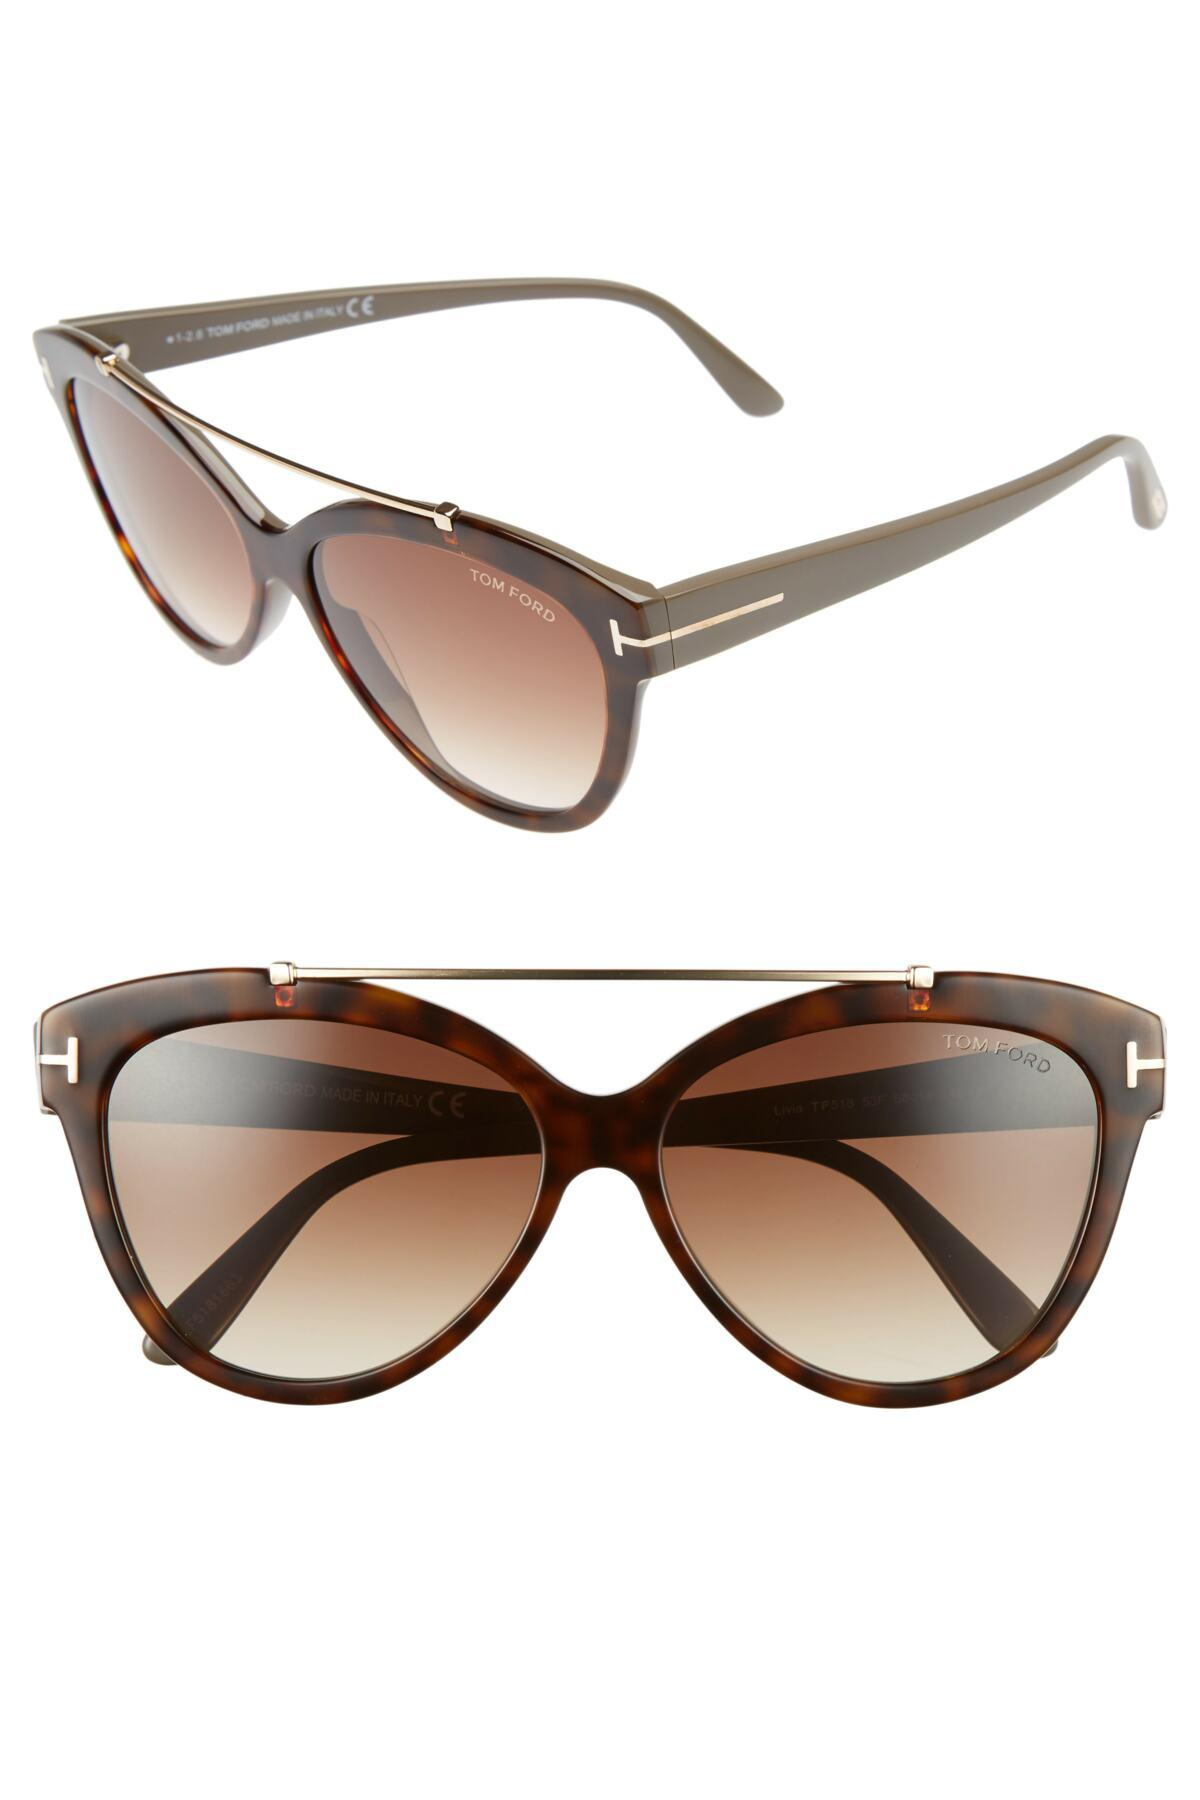 34b1b0b711c Lyst - Tom Ford Livia 58mm Gradient Butterfly Sunglasses in Brown